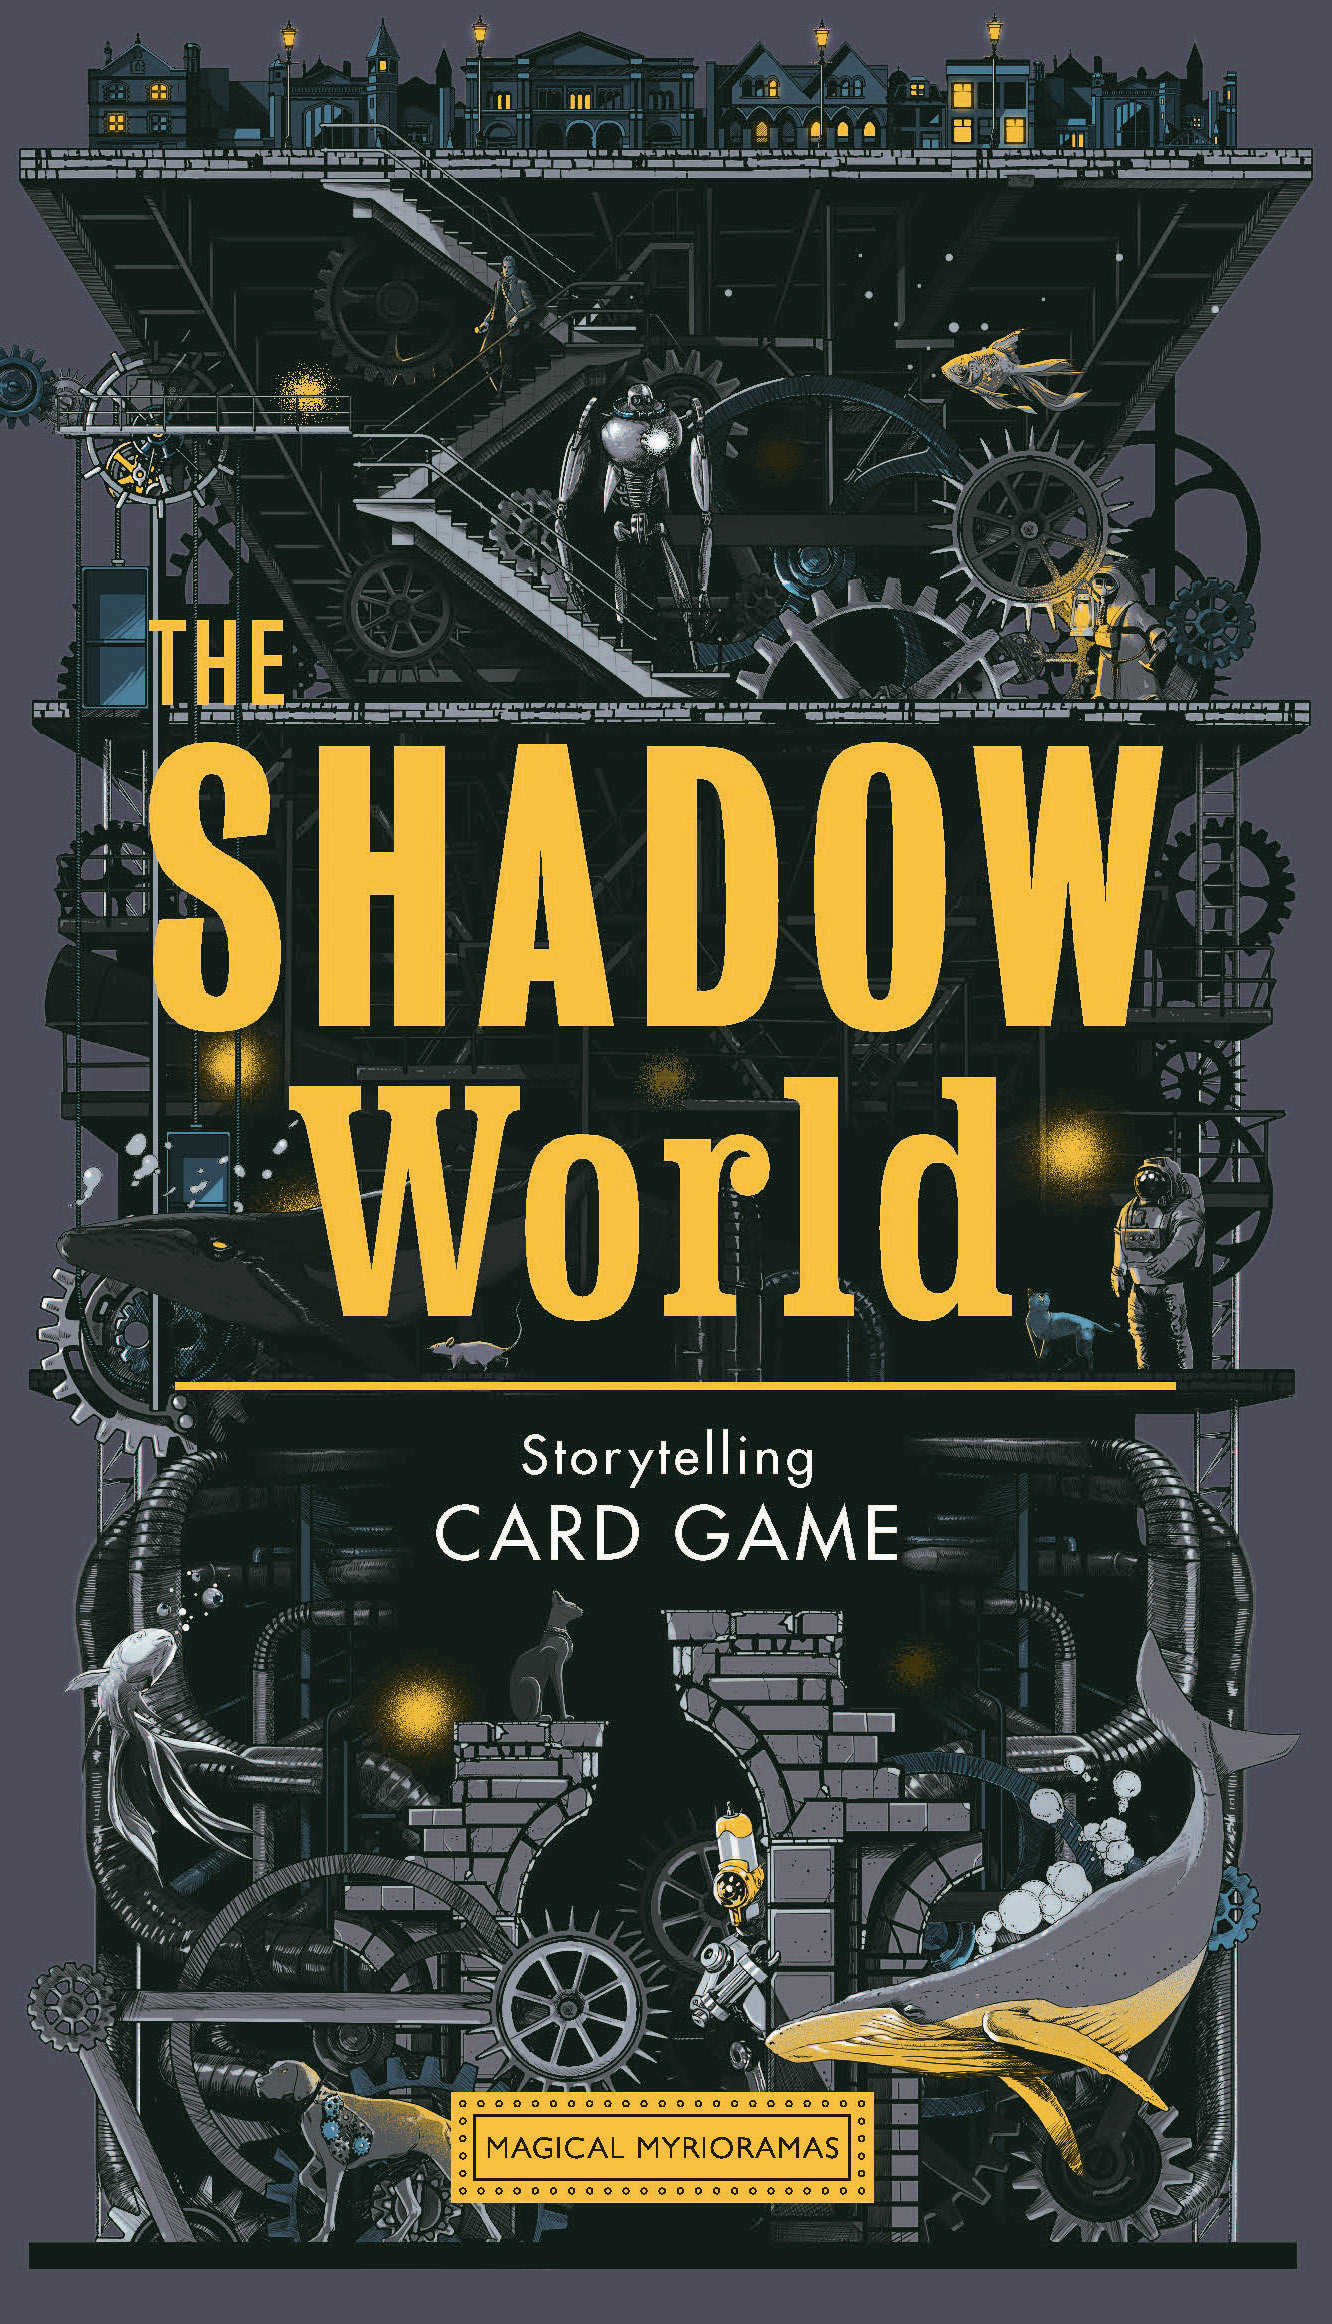 THE SHADOW WORLD A SCI-FI STORYTELLING CARD GAME (MAGICAL MYRIORAMAS) /ANGLAIS